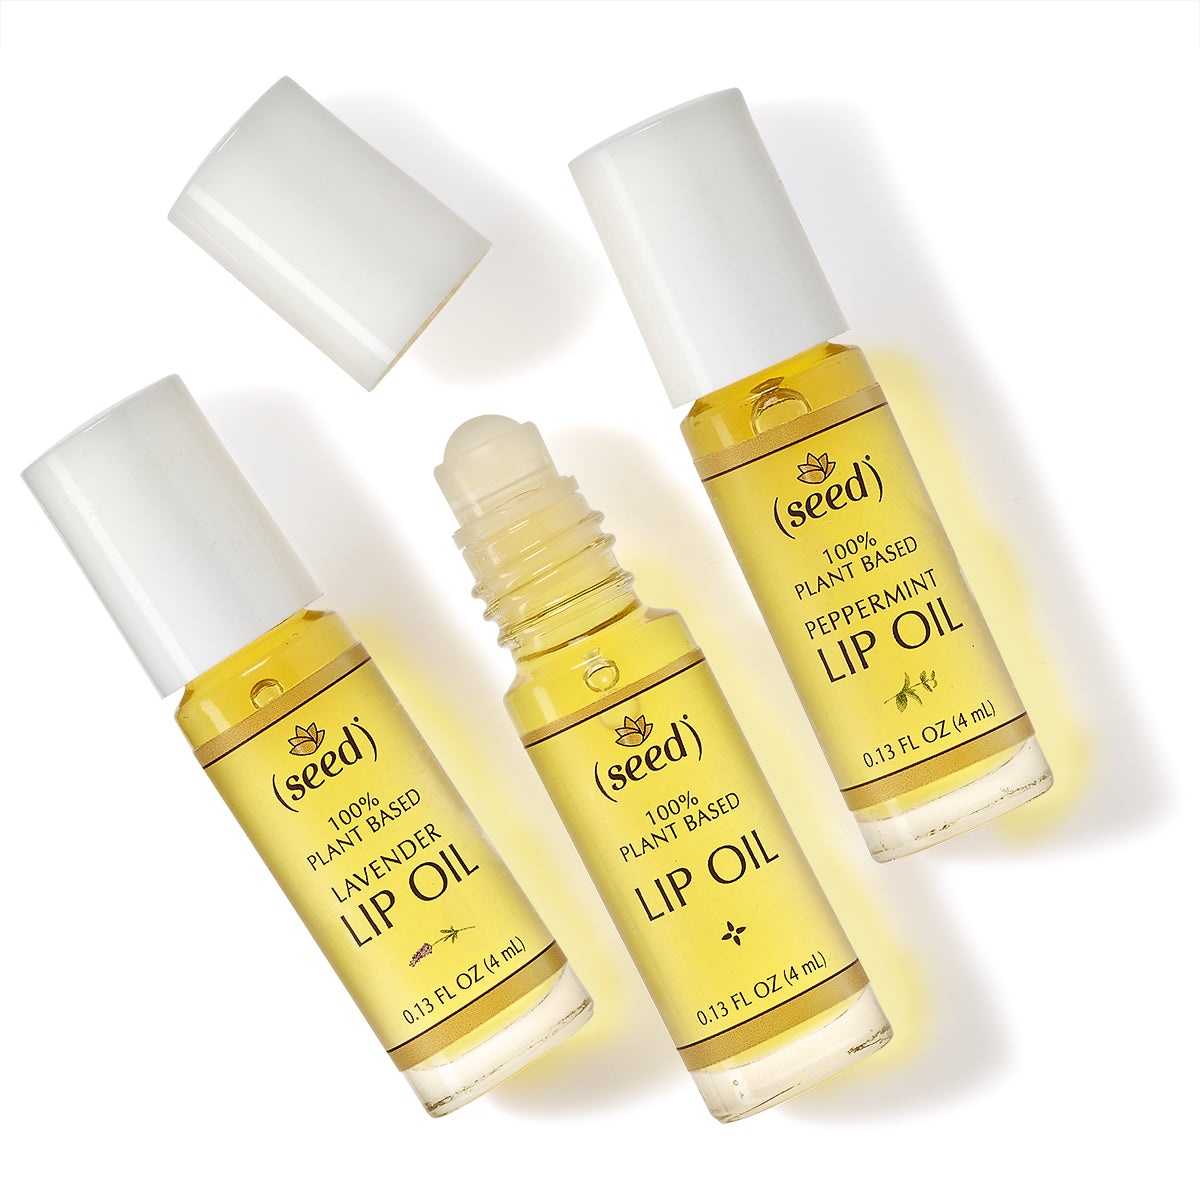 Seed Lip Oil Collection with Fragrance Free, Lavender, and Peppermint Lip Oil